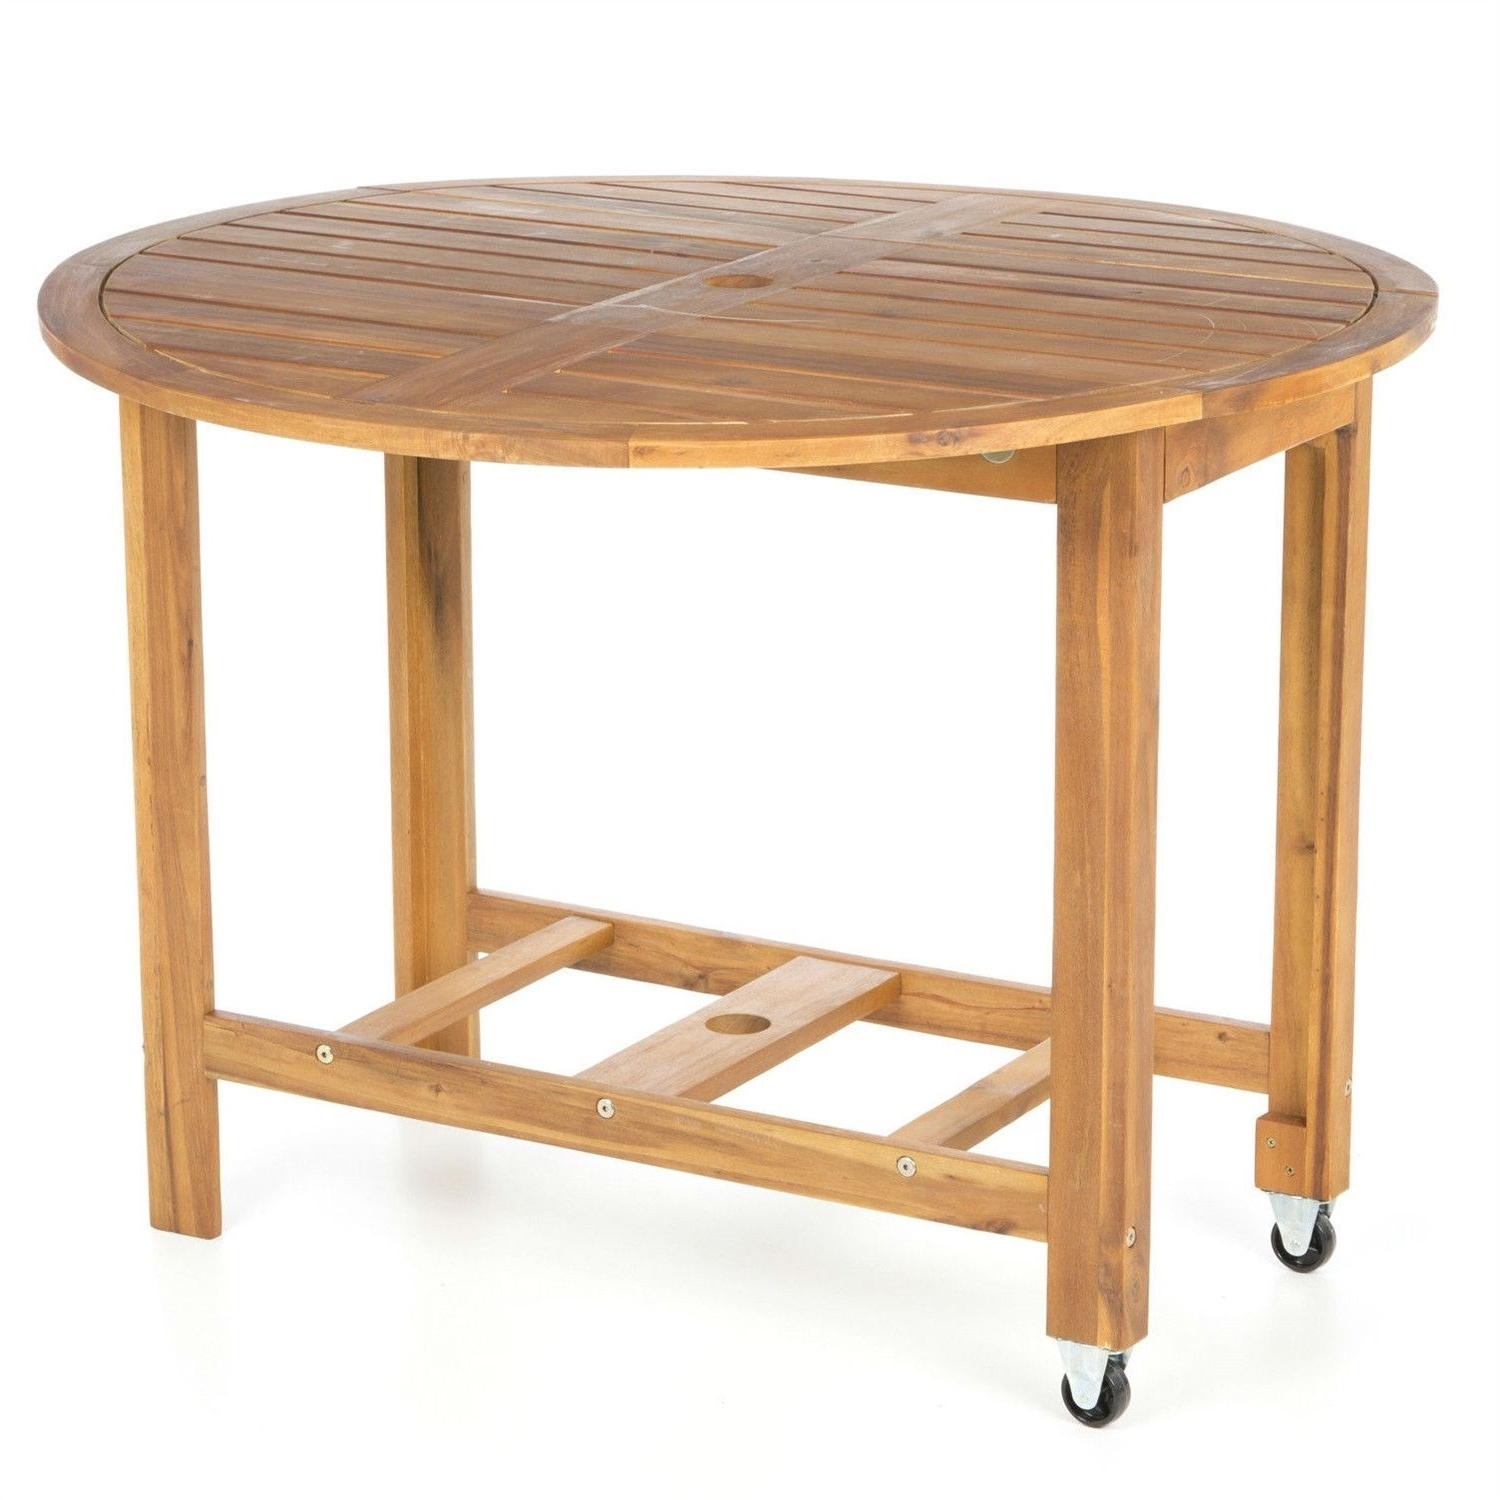 Favorite 39 Inch Round Wood Folding Outdoor Patio Dining Table With Wheels Throughout Folding Outdoor Dining Tables (View 25 of 25)